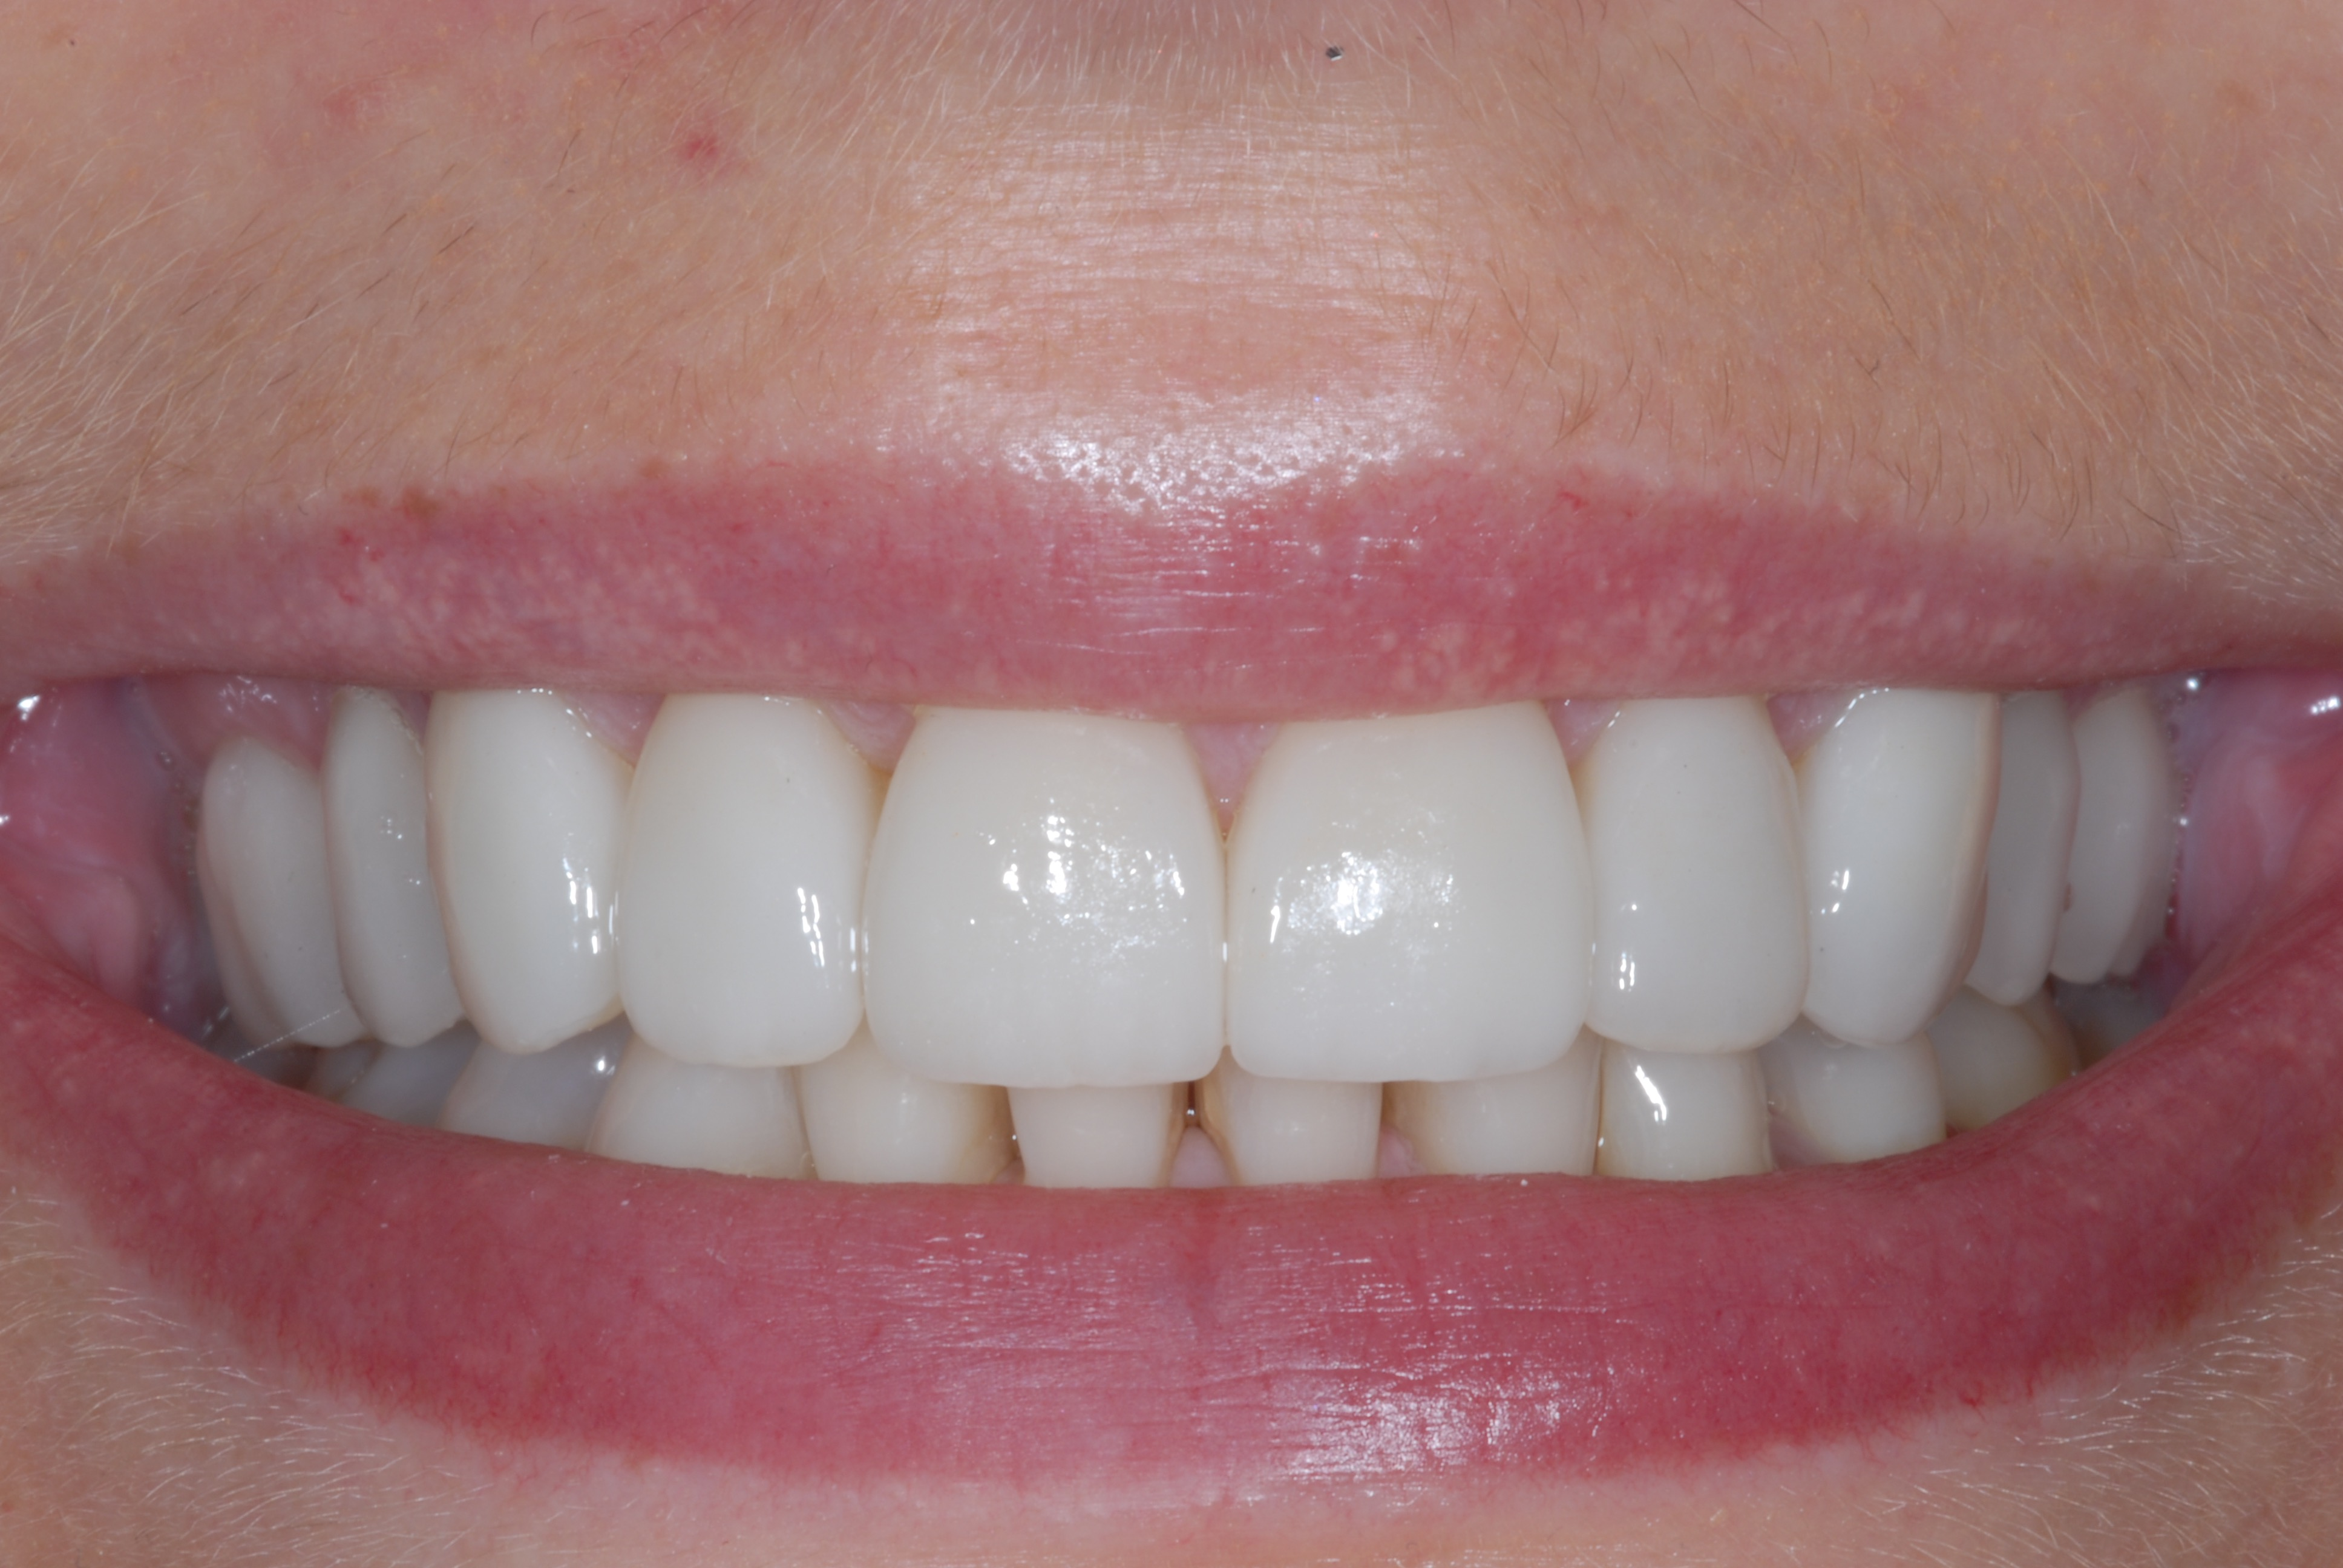 Ten Veneers Smile - After